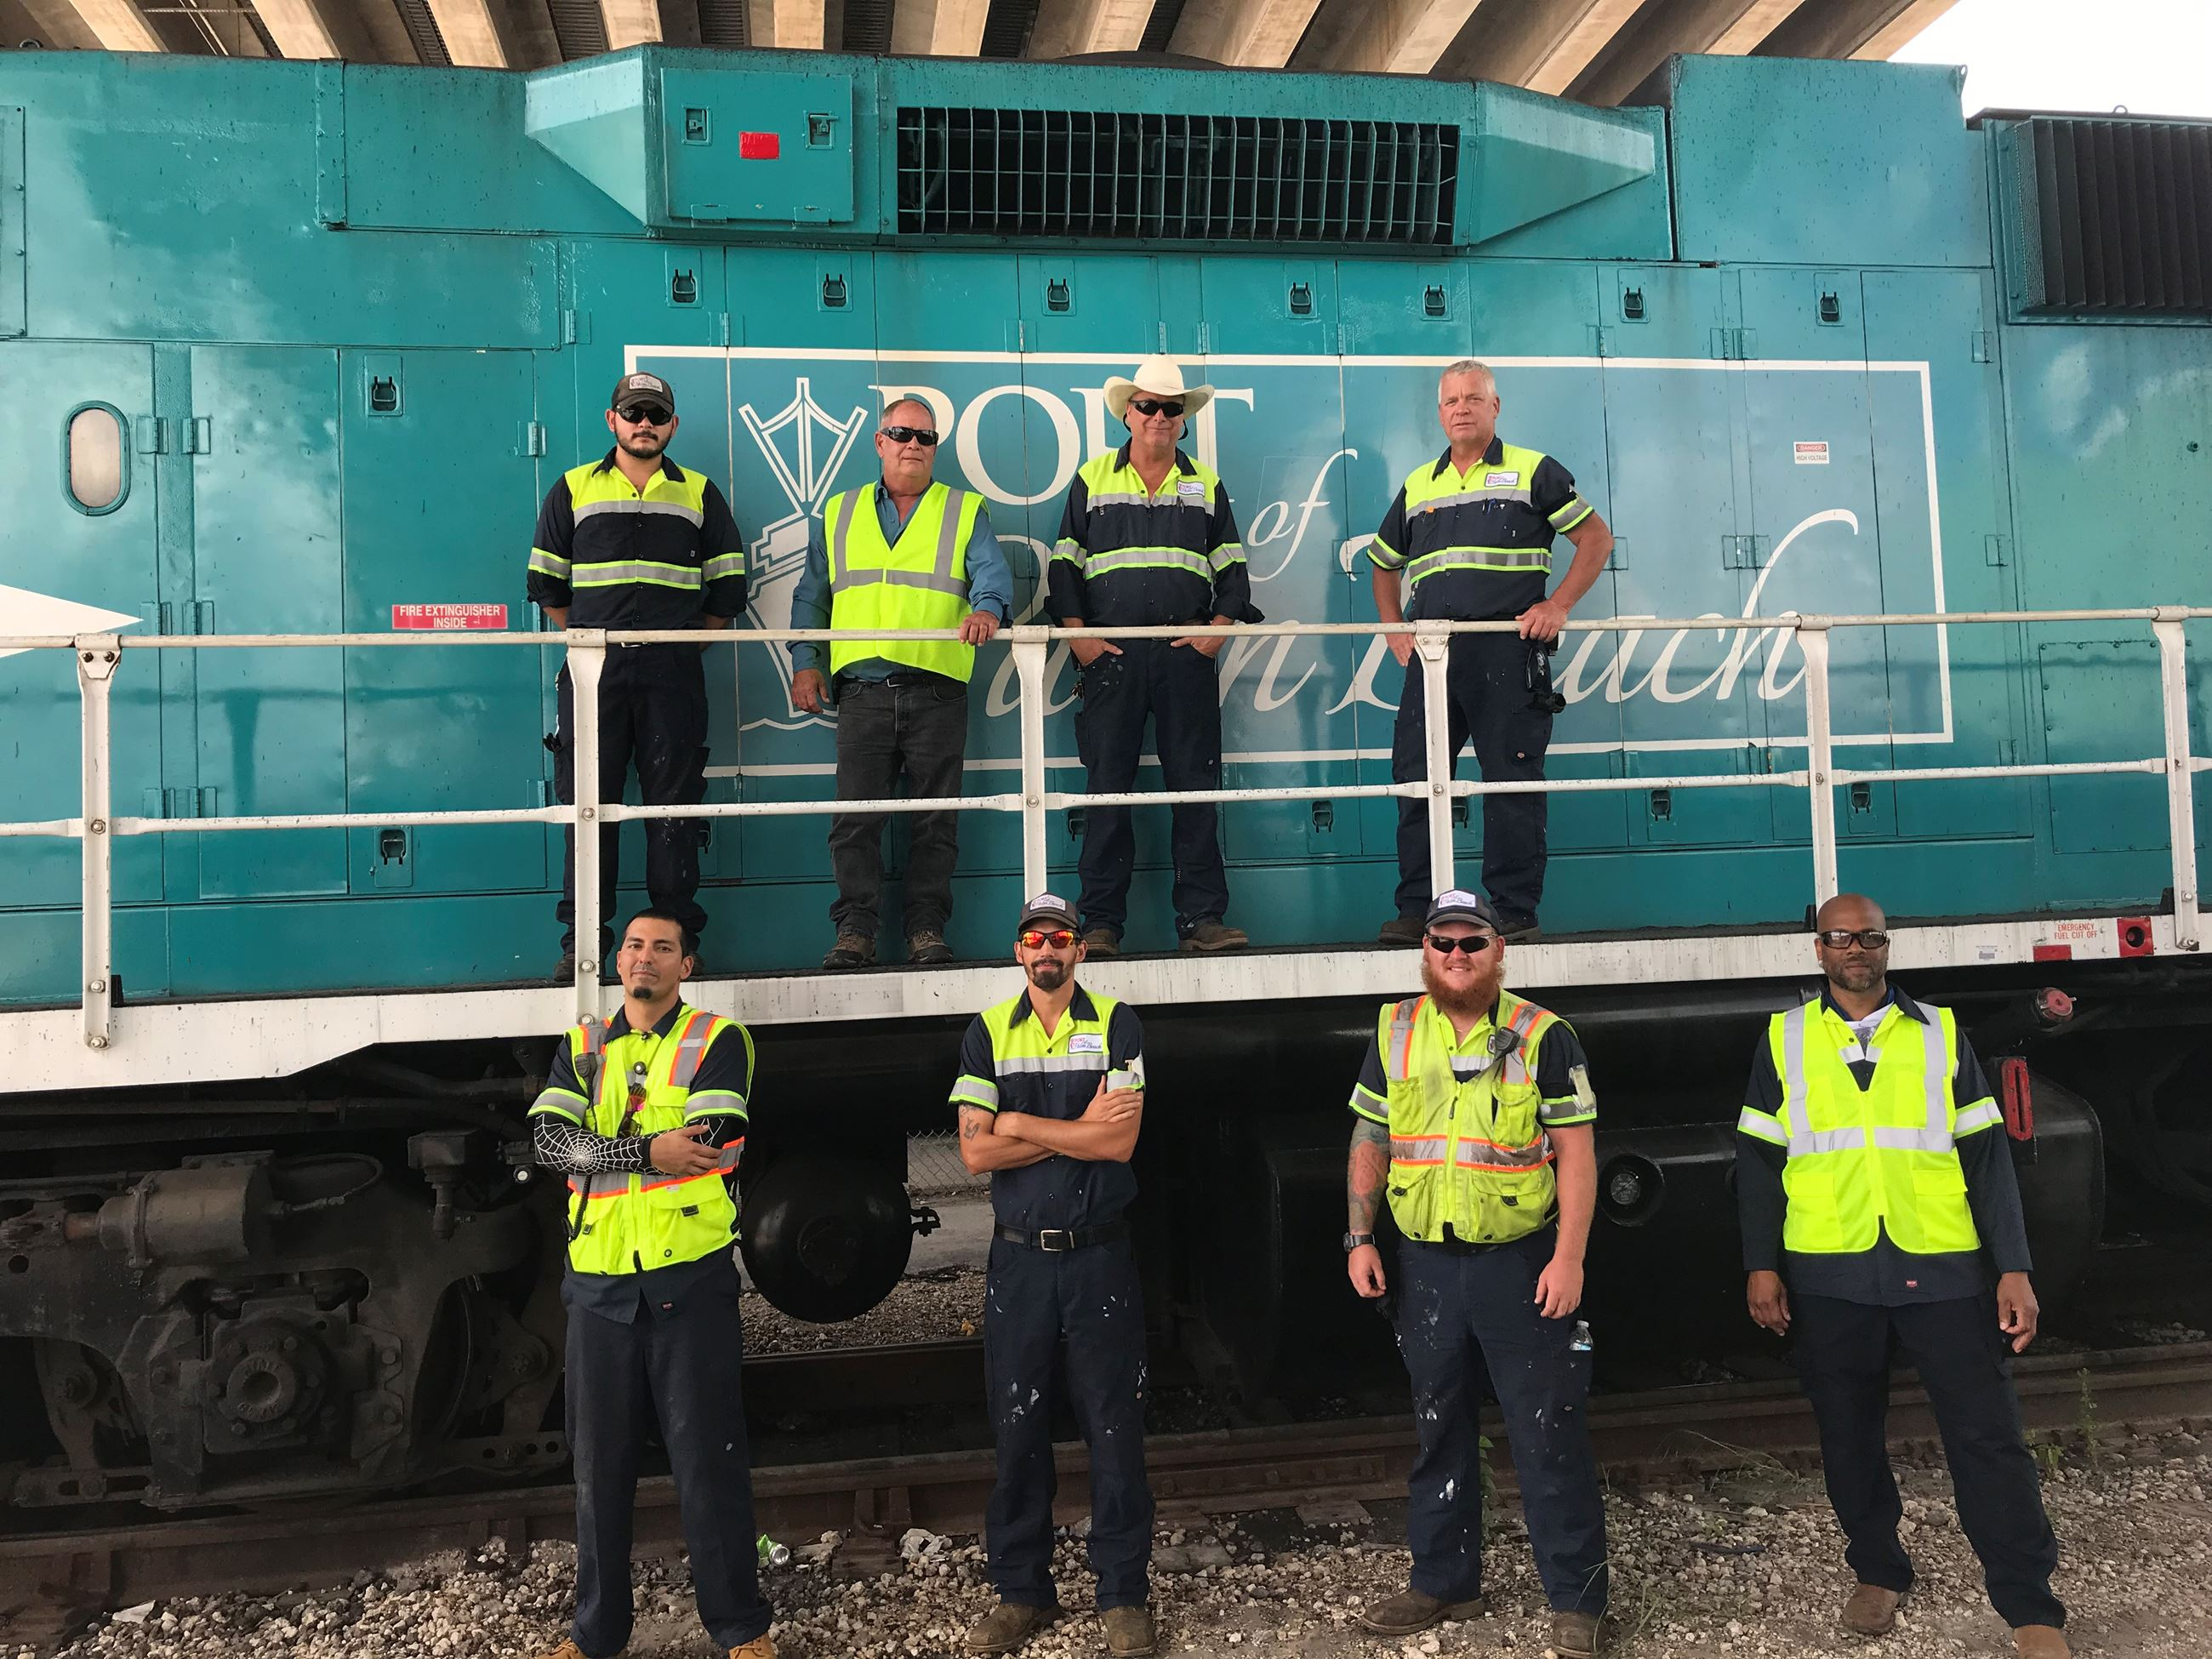 Rail team posing in front of locomotive